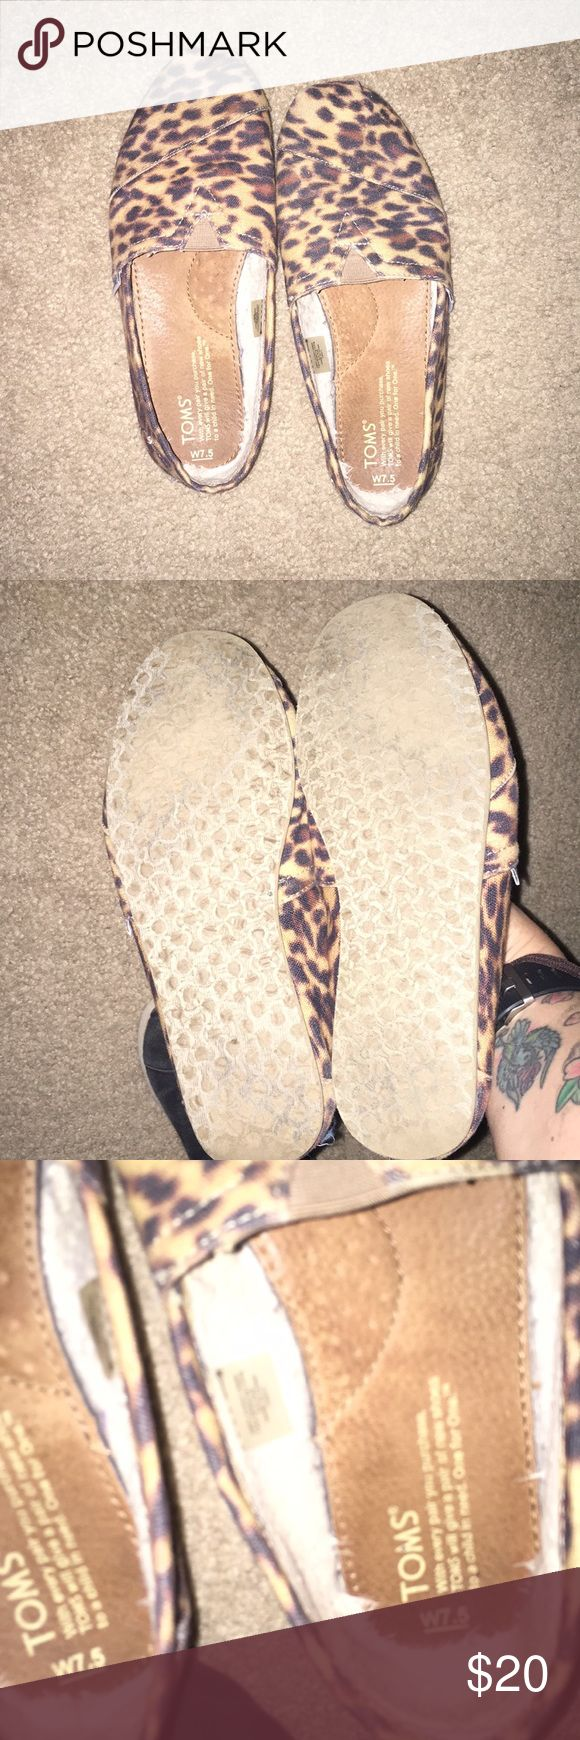 Leopard toms Cute leopard Tom's with a sherpa lining inside. Not worn much. In good condition 🙂 Toms Shoes Flats & Loafers